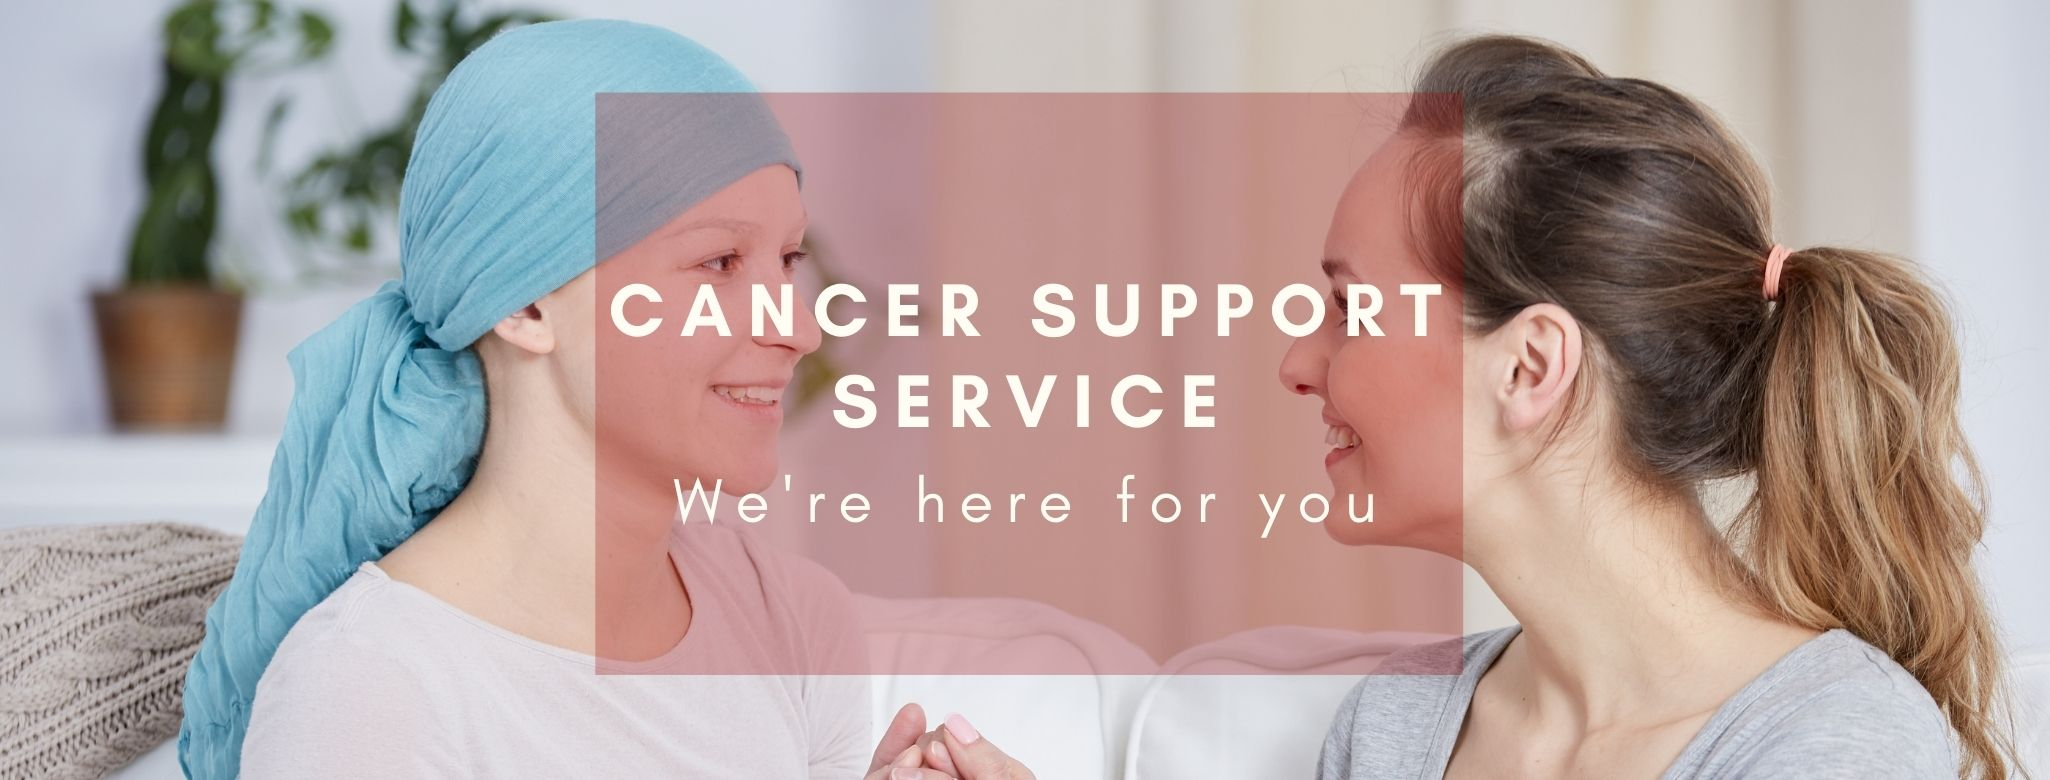 Our Cancer Support Service is here for you